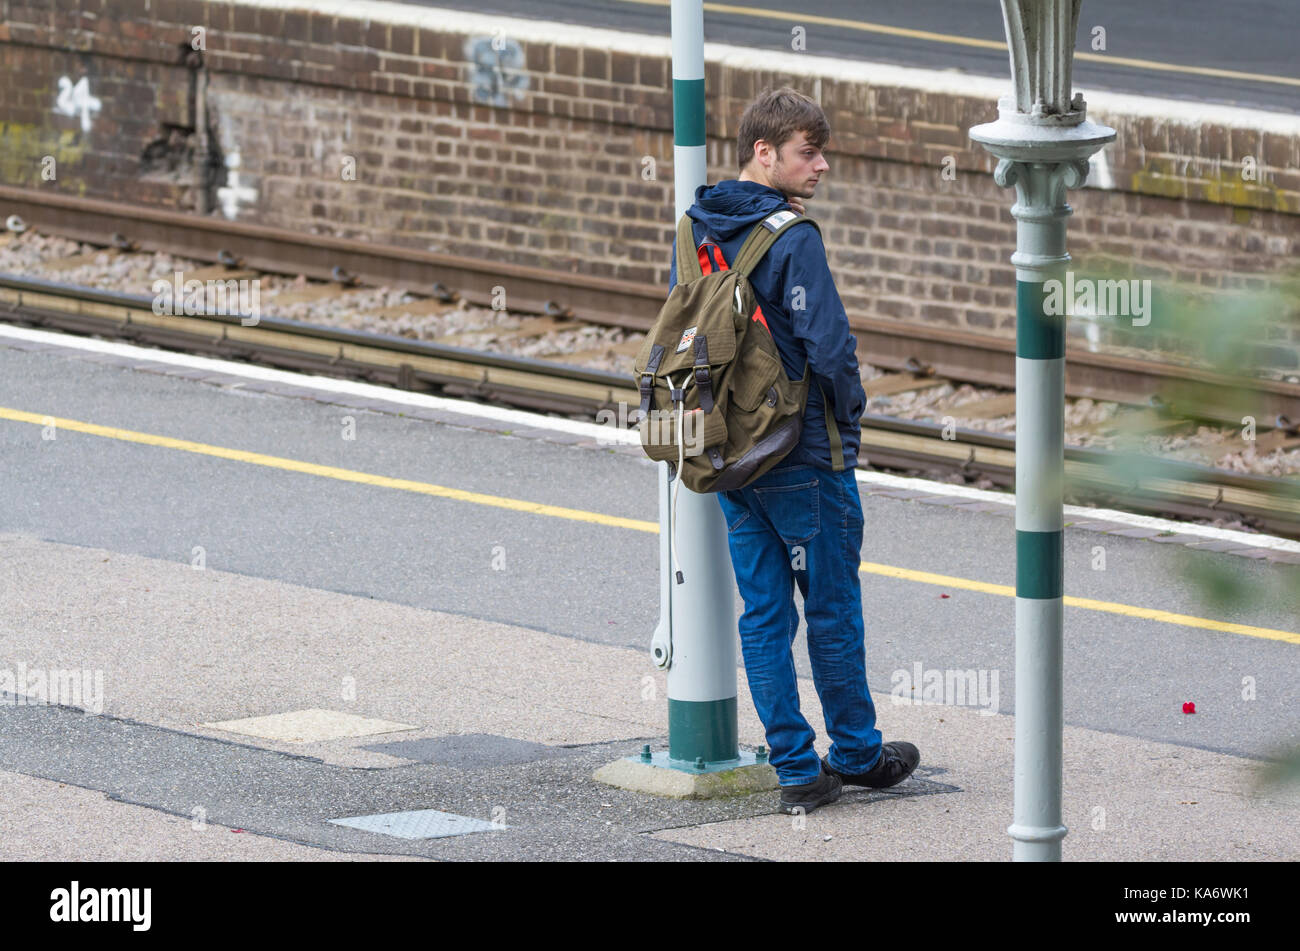 Man standing on a train platform waiting for a train at a British railway station in England, UK. - Stock Image